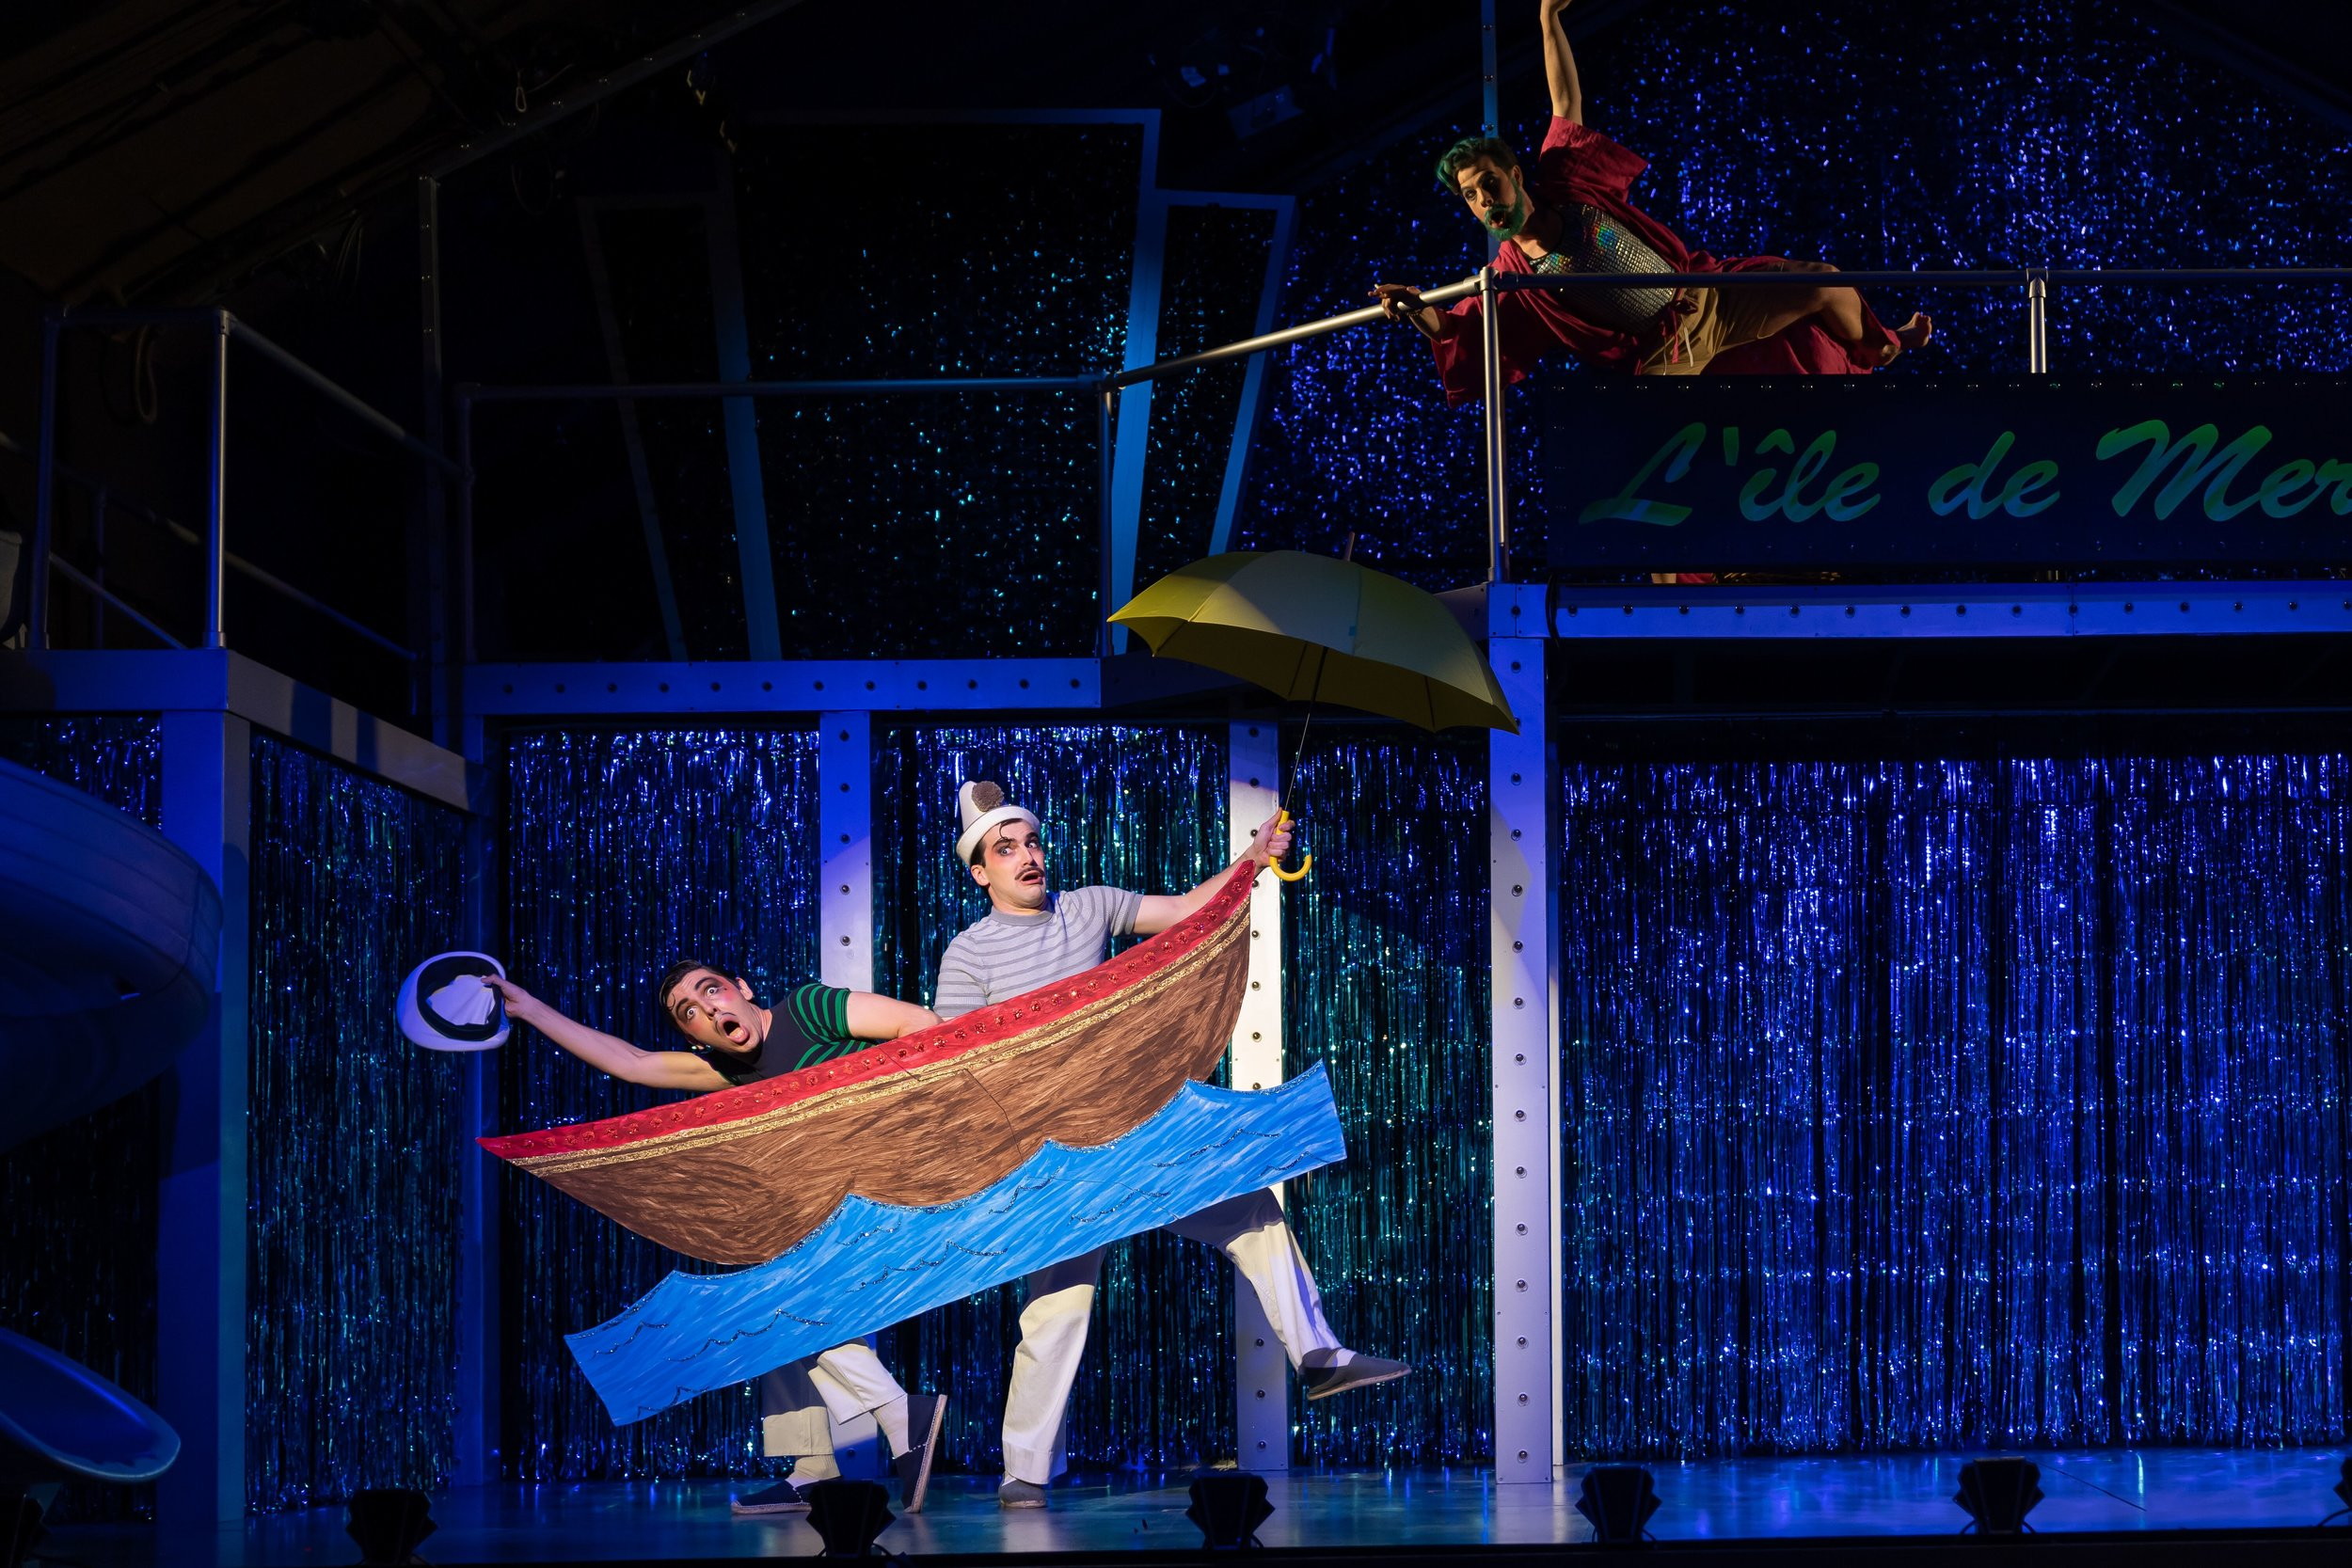 l to r : Two sailors from Paris, Scapin (Daniel Noyola) and Pierrot (Ben Edquist) approach Atlantis as Merlin (Conor McDonald) tracks them overhead. Photo by Scott Suchman; courtesy of Wolf Trap Opera.